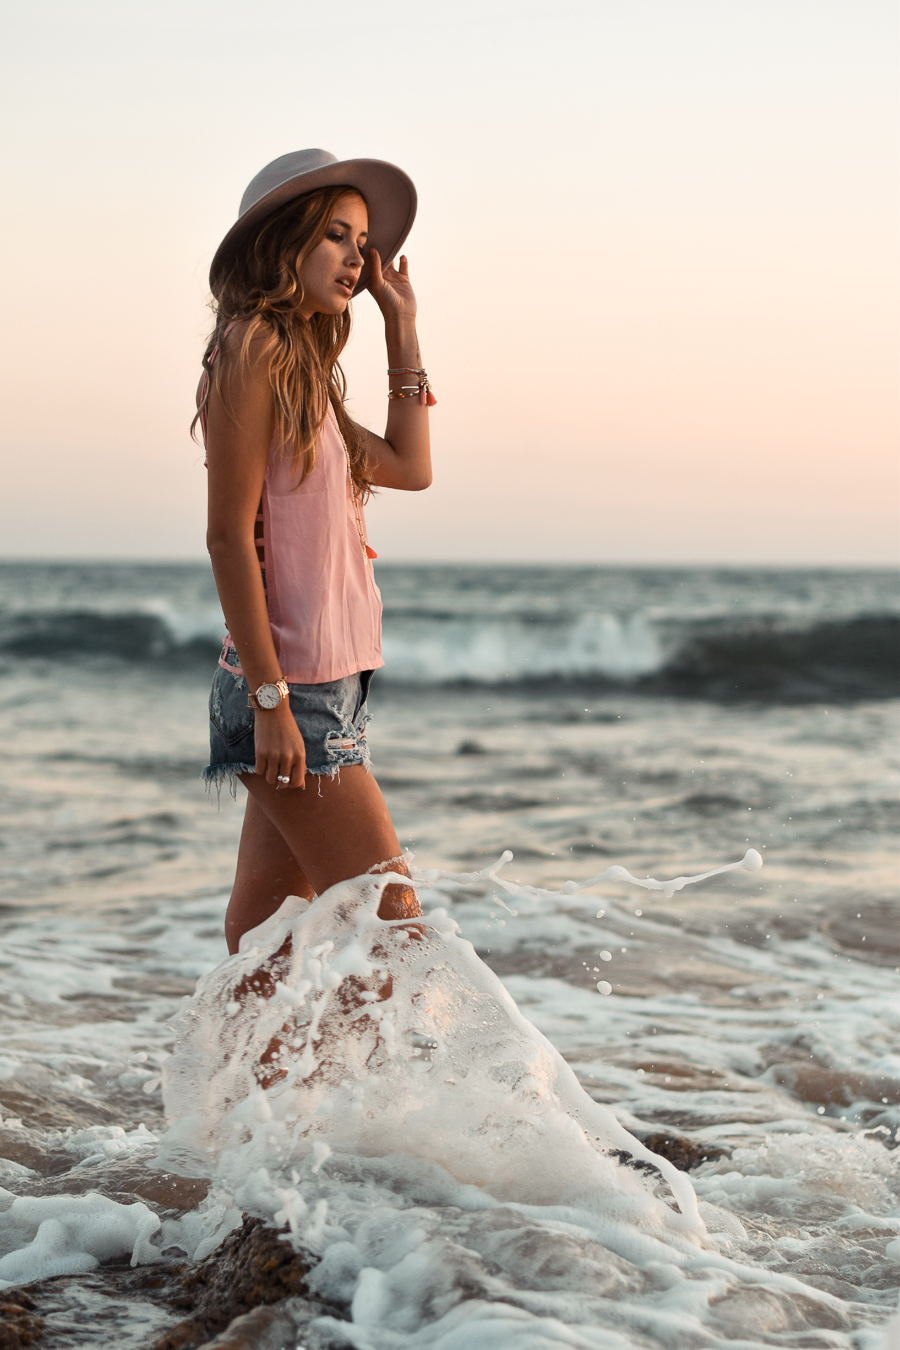 The denim shorts are of course a beach style stable. Add a pink sleeveless top and a hat and you can consider yourself ready. Via Daisy R. Hat: River Island, Denim Shorts: Sheinside, Beach Outfits